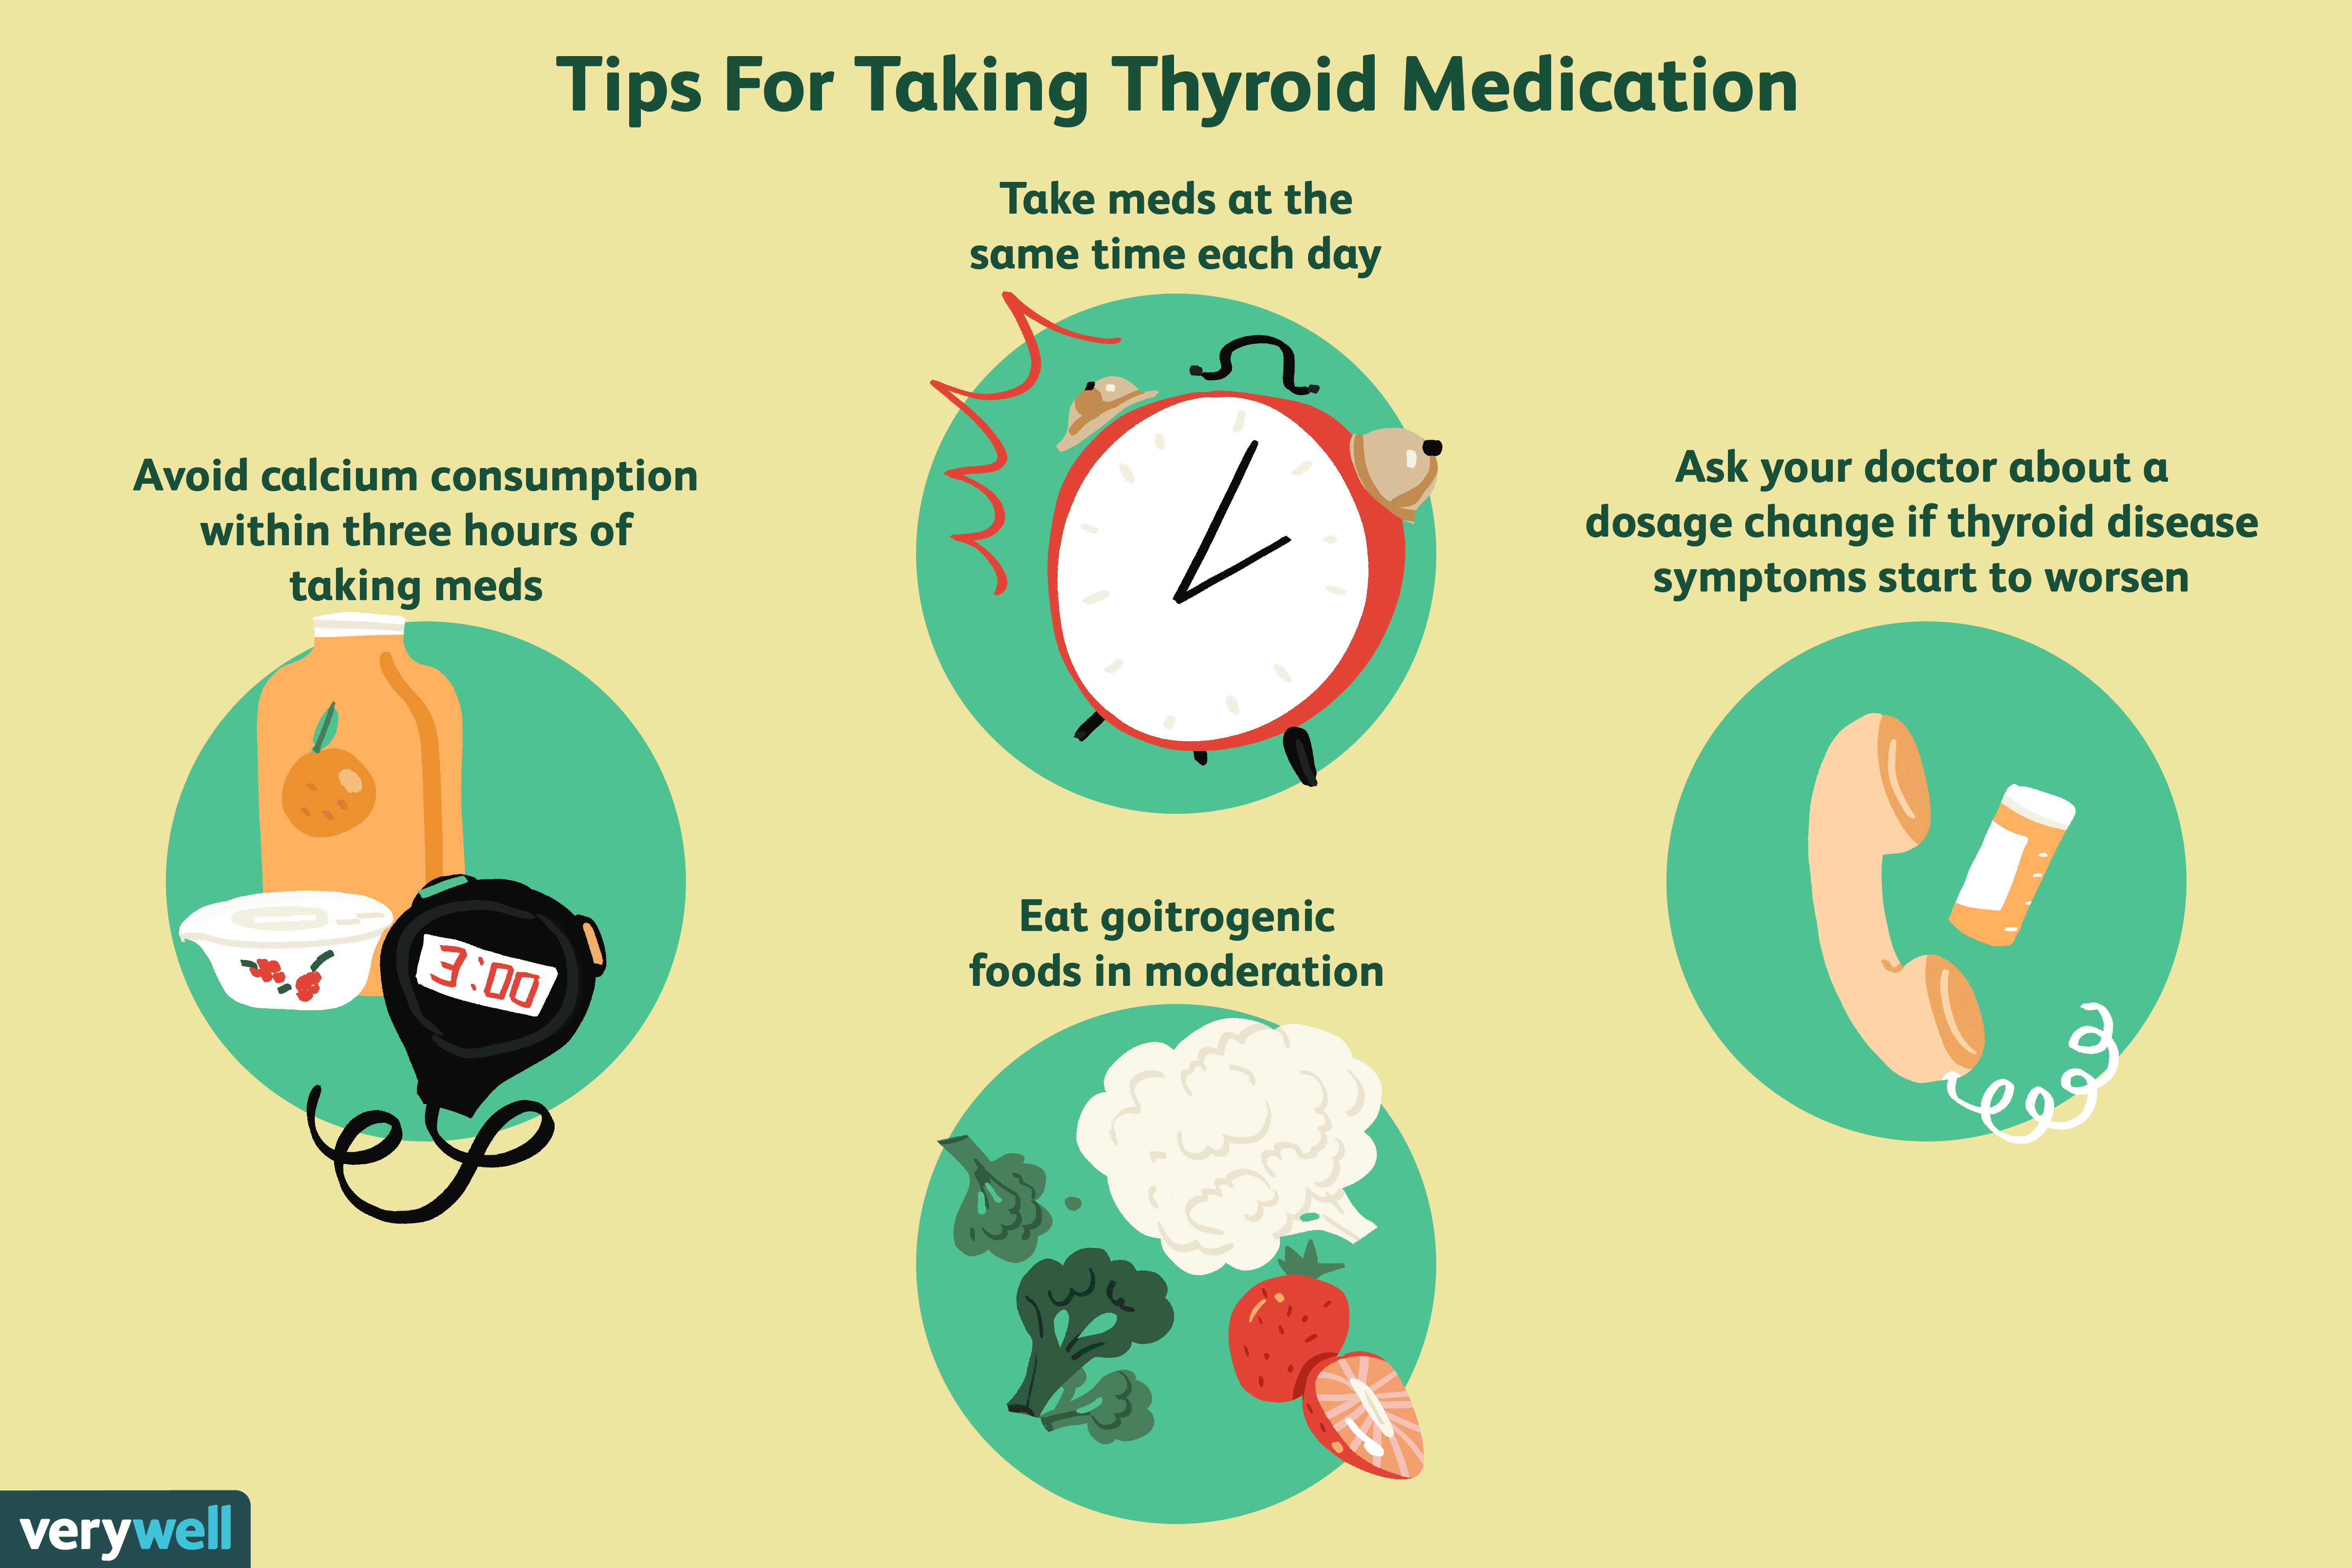 How to Properly Take Your Thyroid Medication